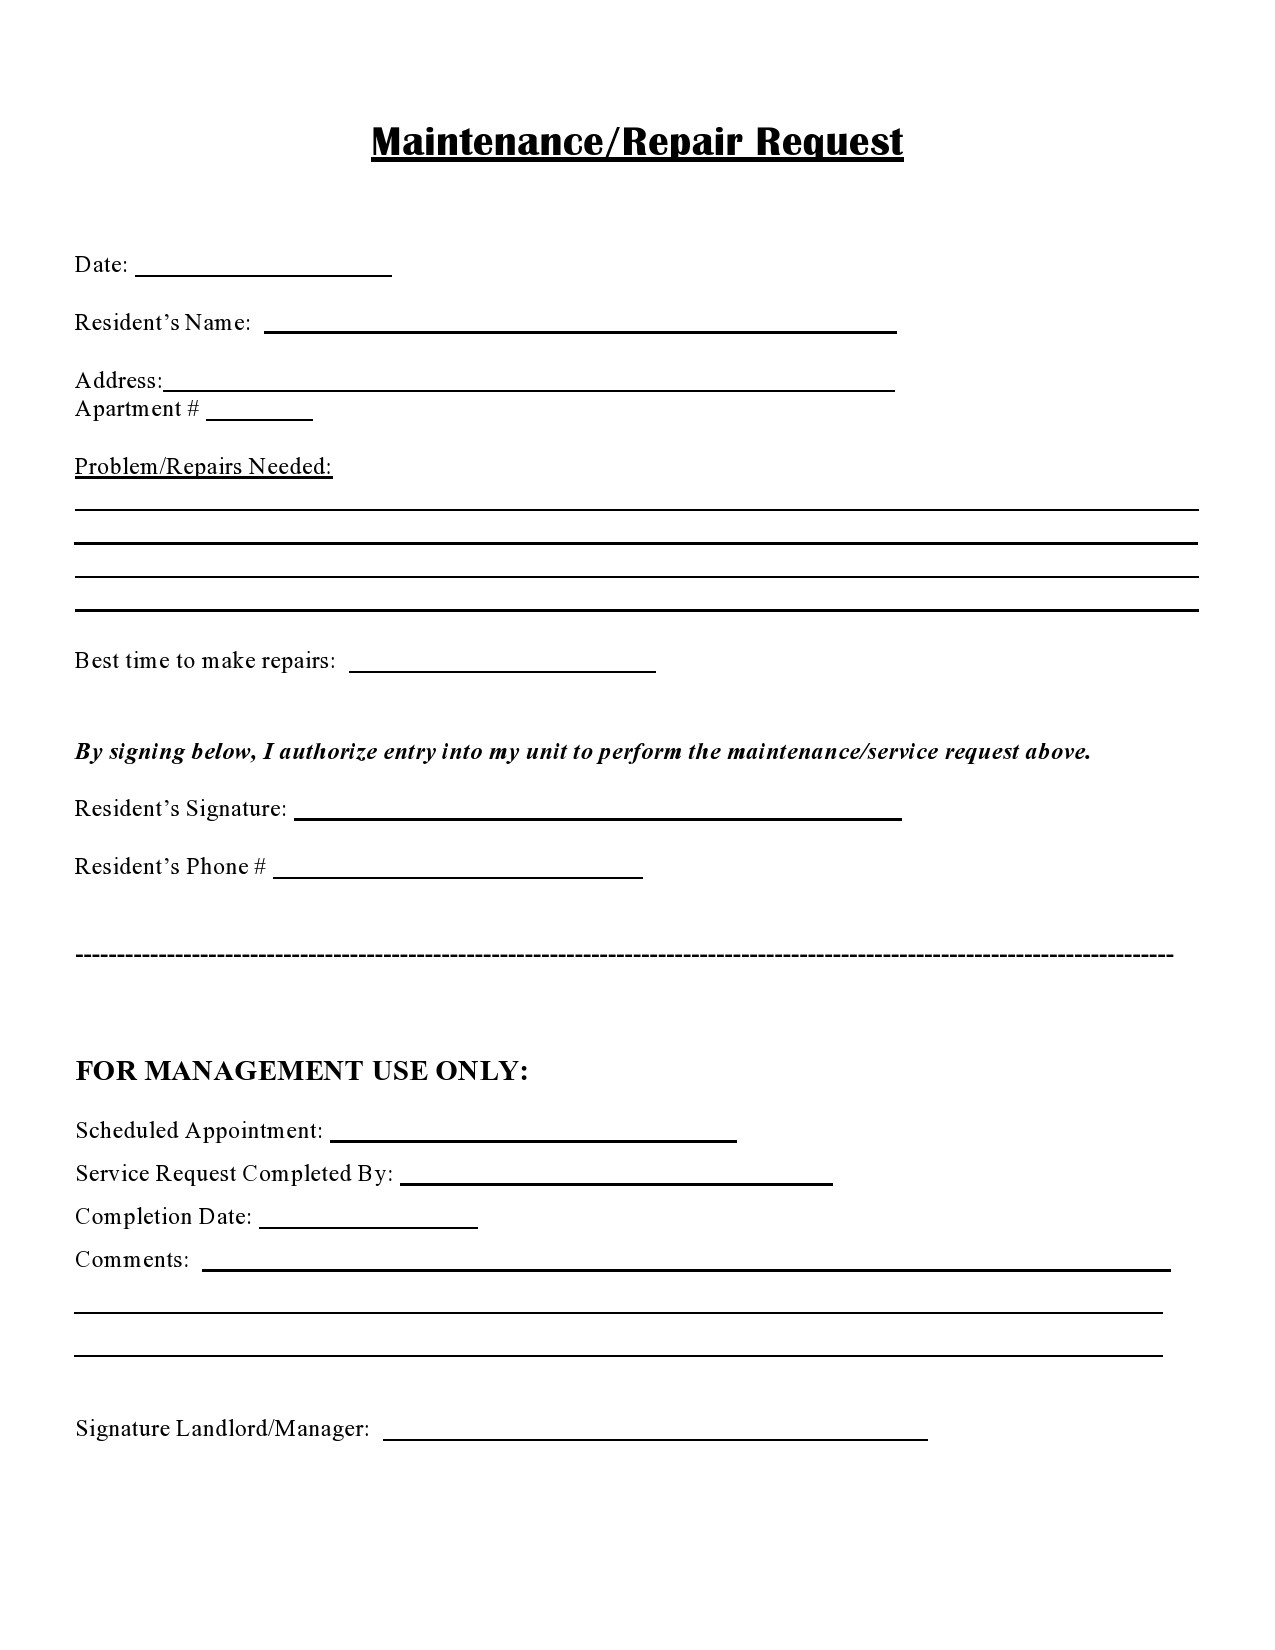 Free maintenance request form 41